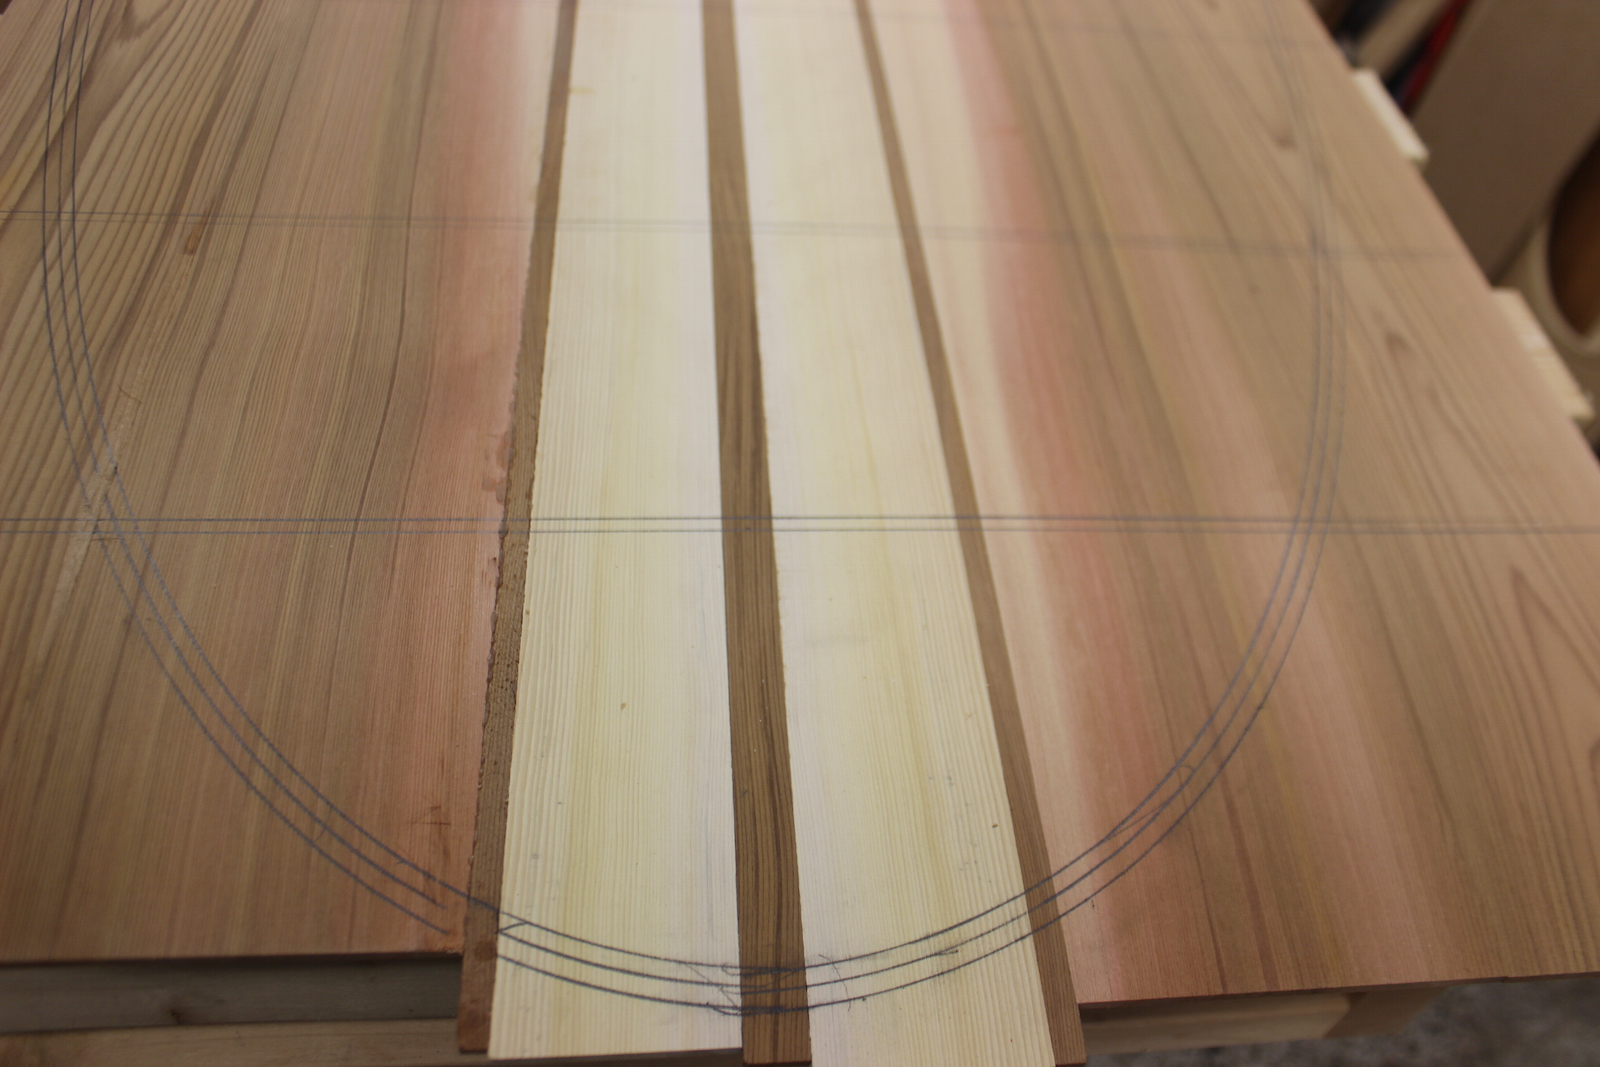 How to build a wood paddle board - layout